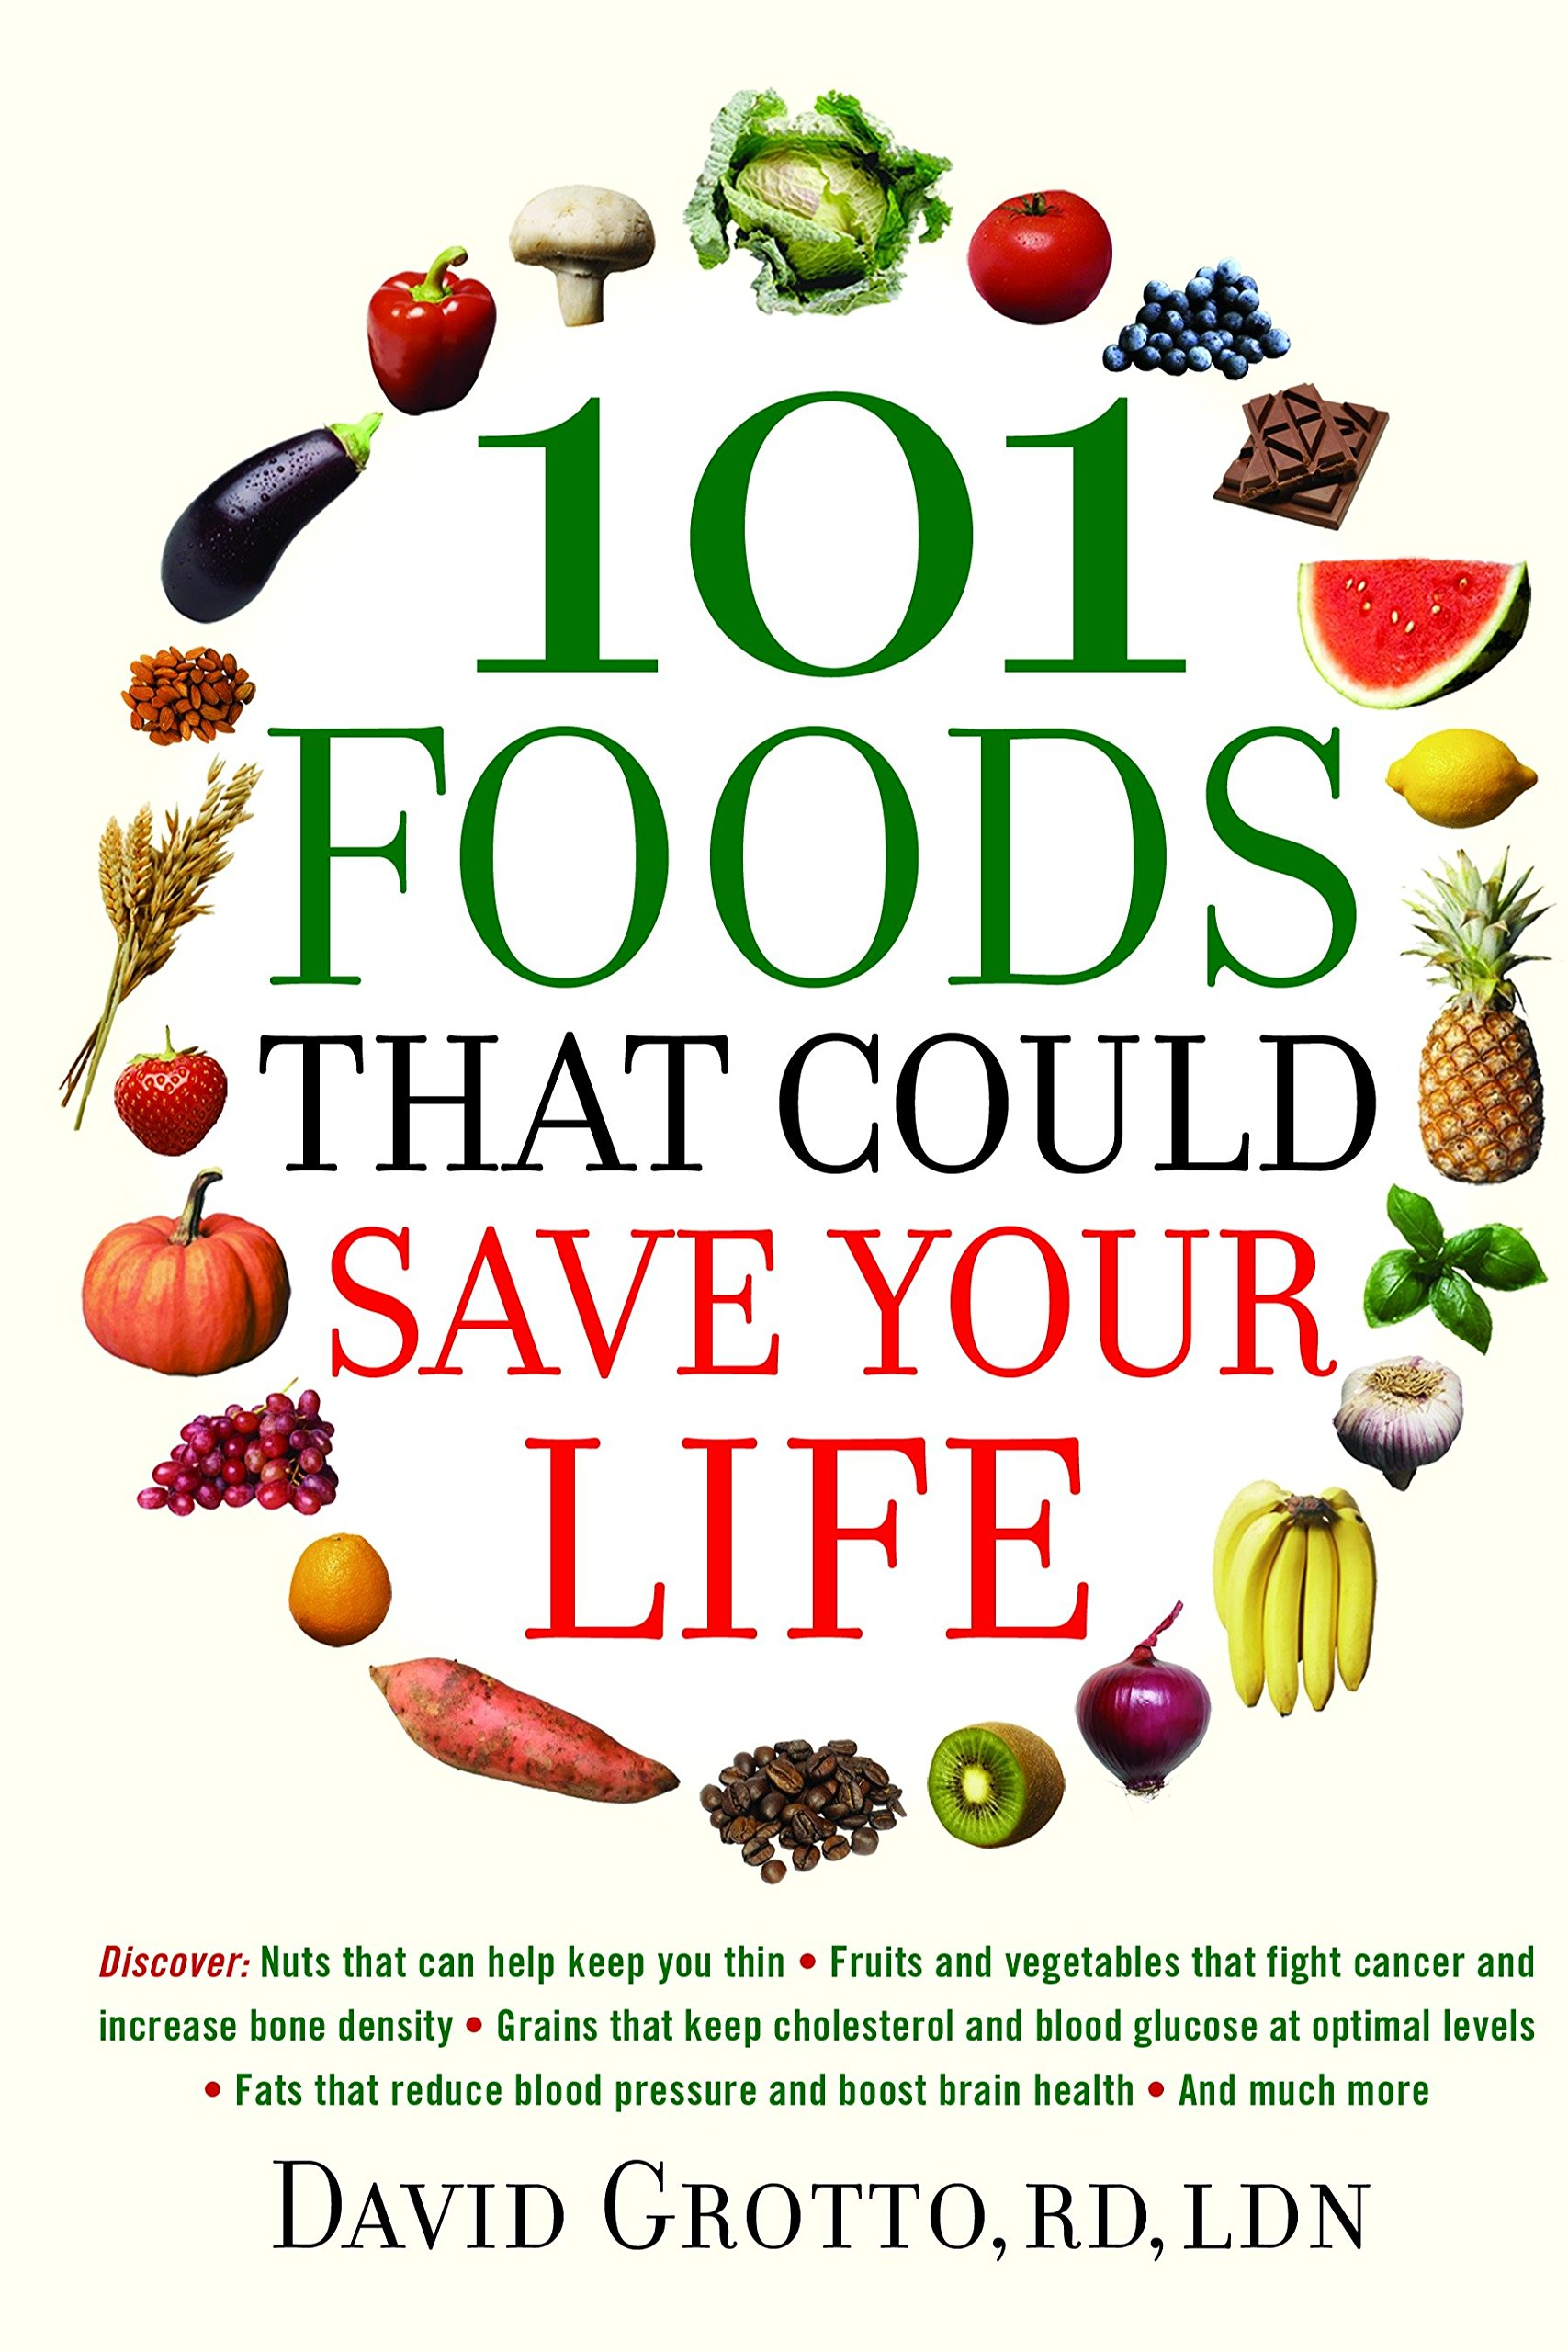 Download 101 Foods That Could Save Your Life: Discover Nuts that Can Help Keep You Thin, Fruits and Vegetables that Fight Cancer, Fats that Reduce Blood Pressure, and Much More ebook